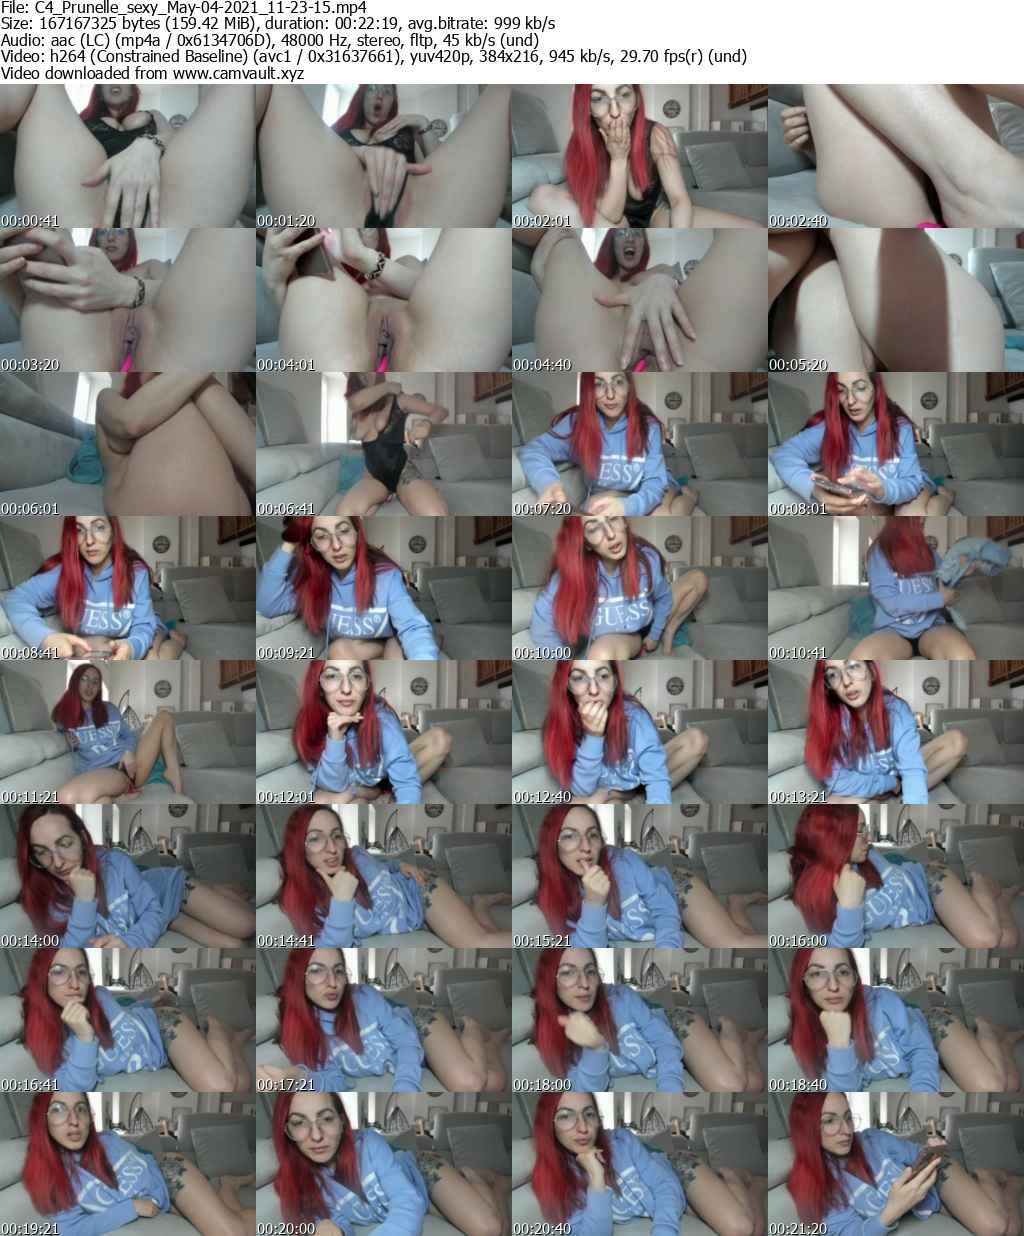 Video preview for model Prunelle_sexy